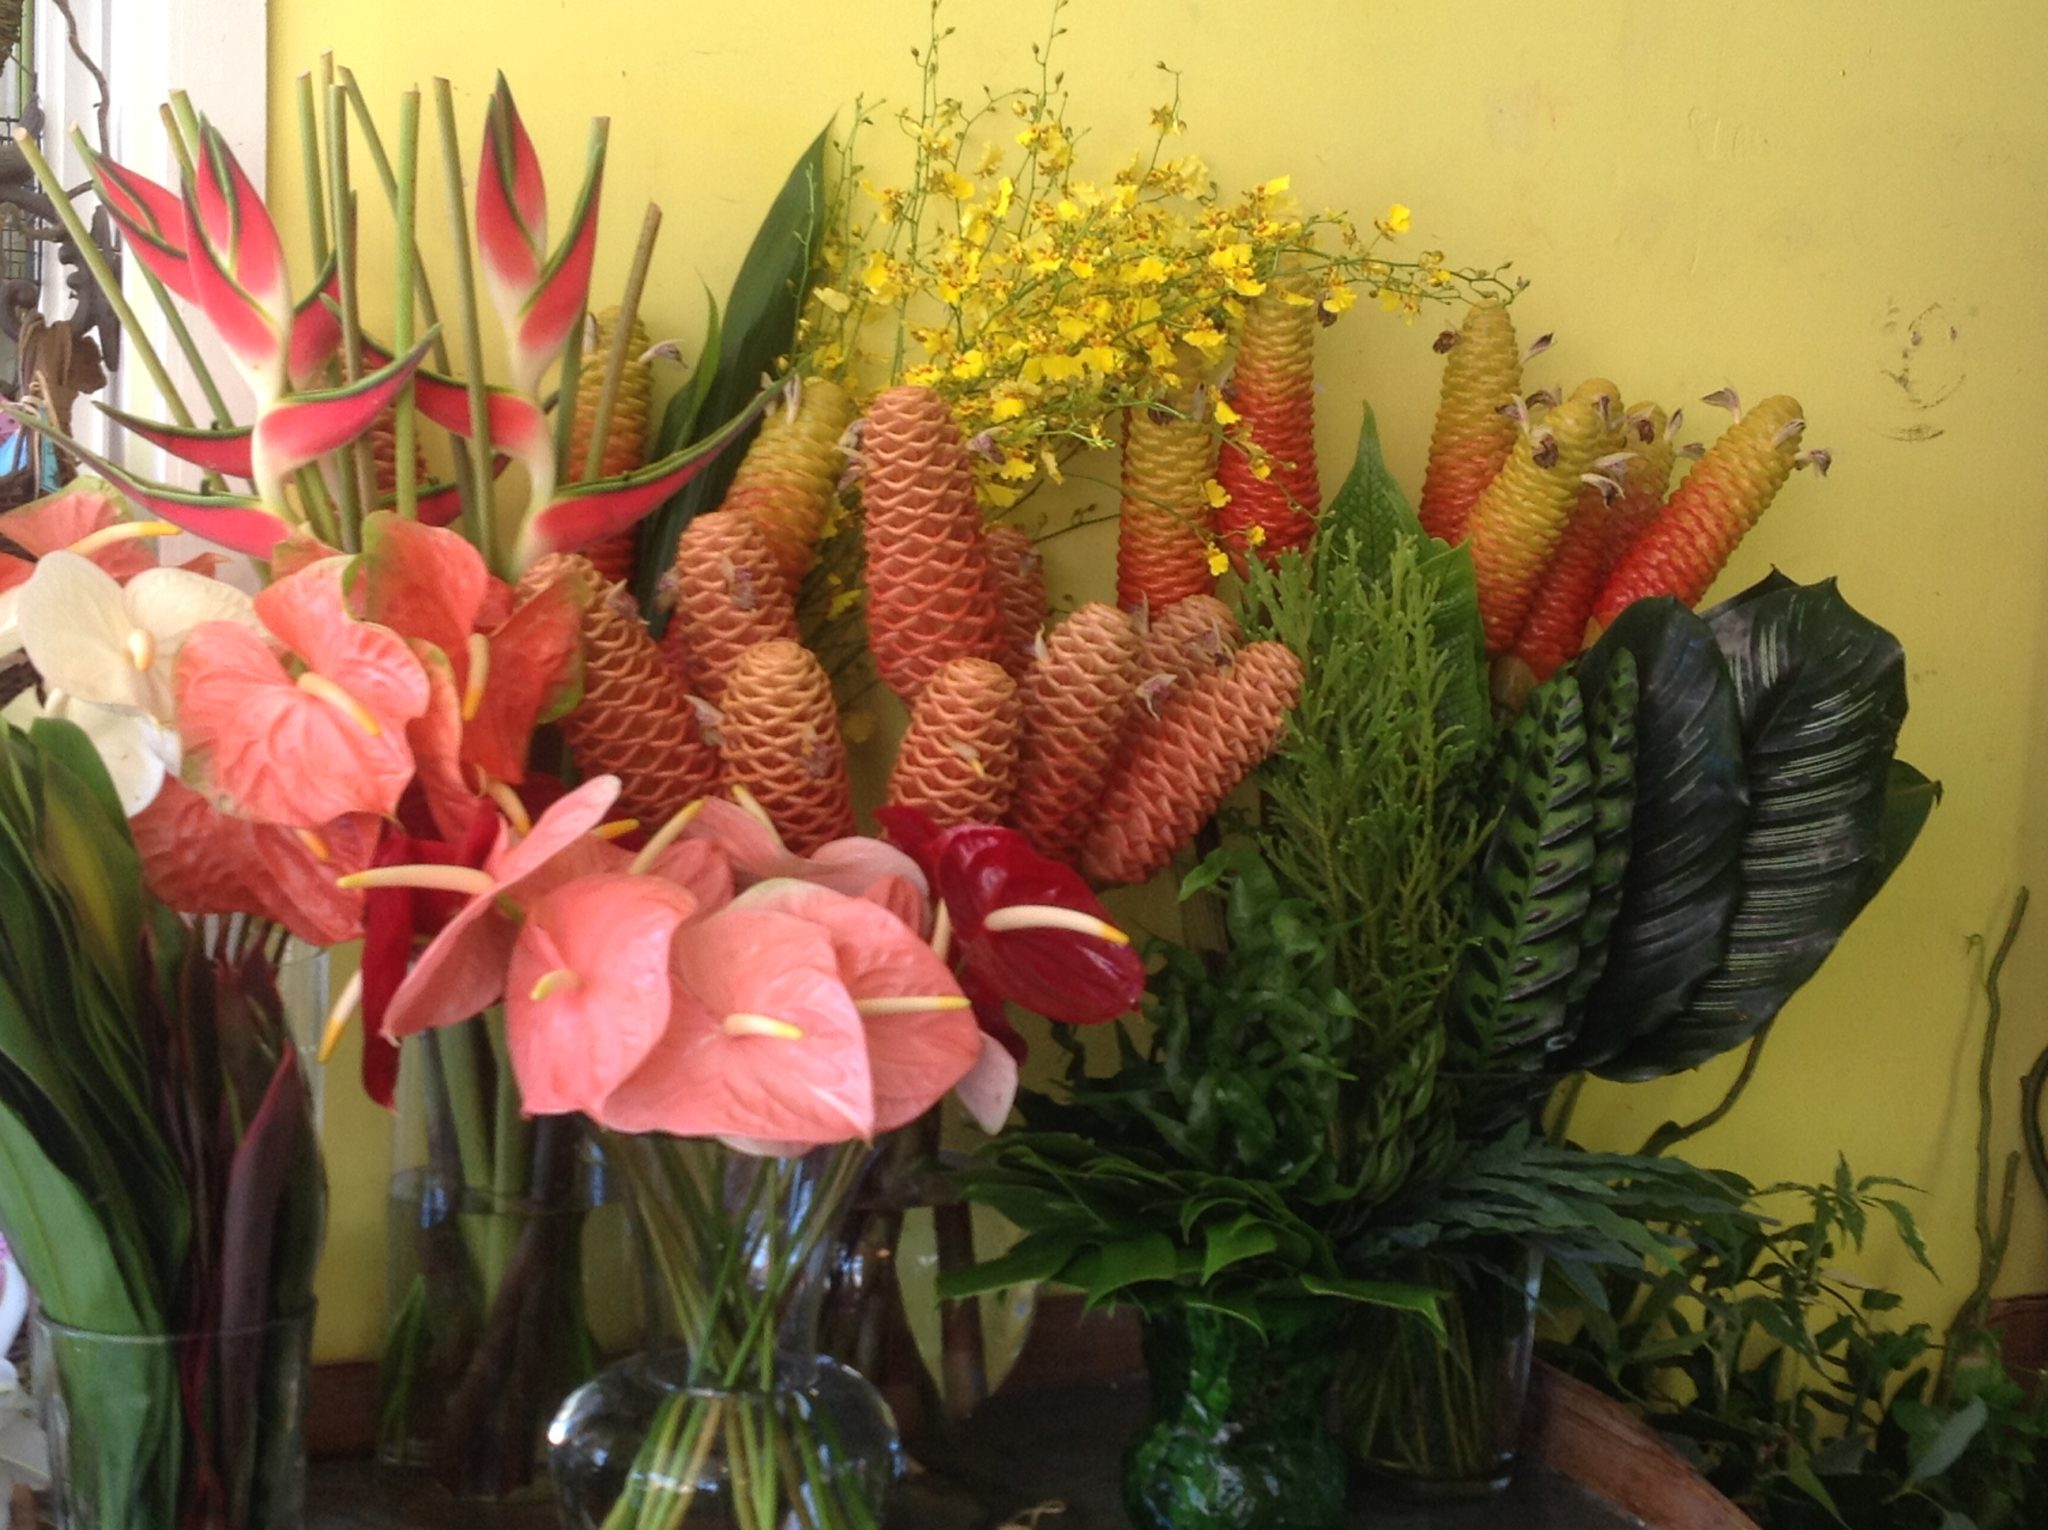 Tropicals from Hawaii!